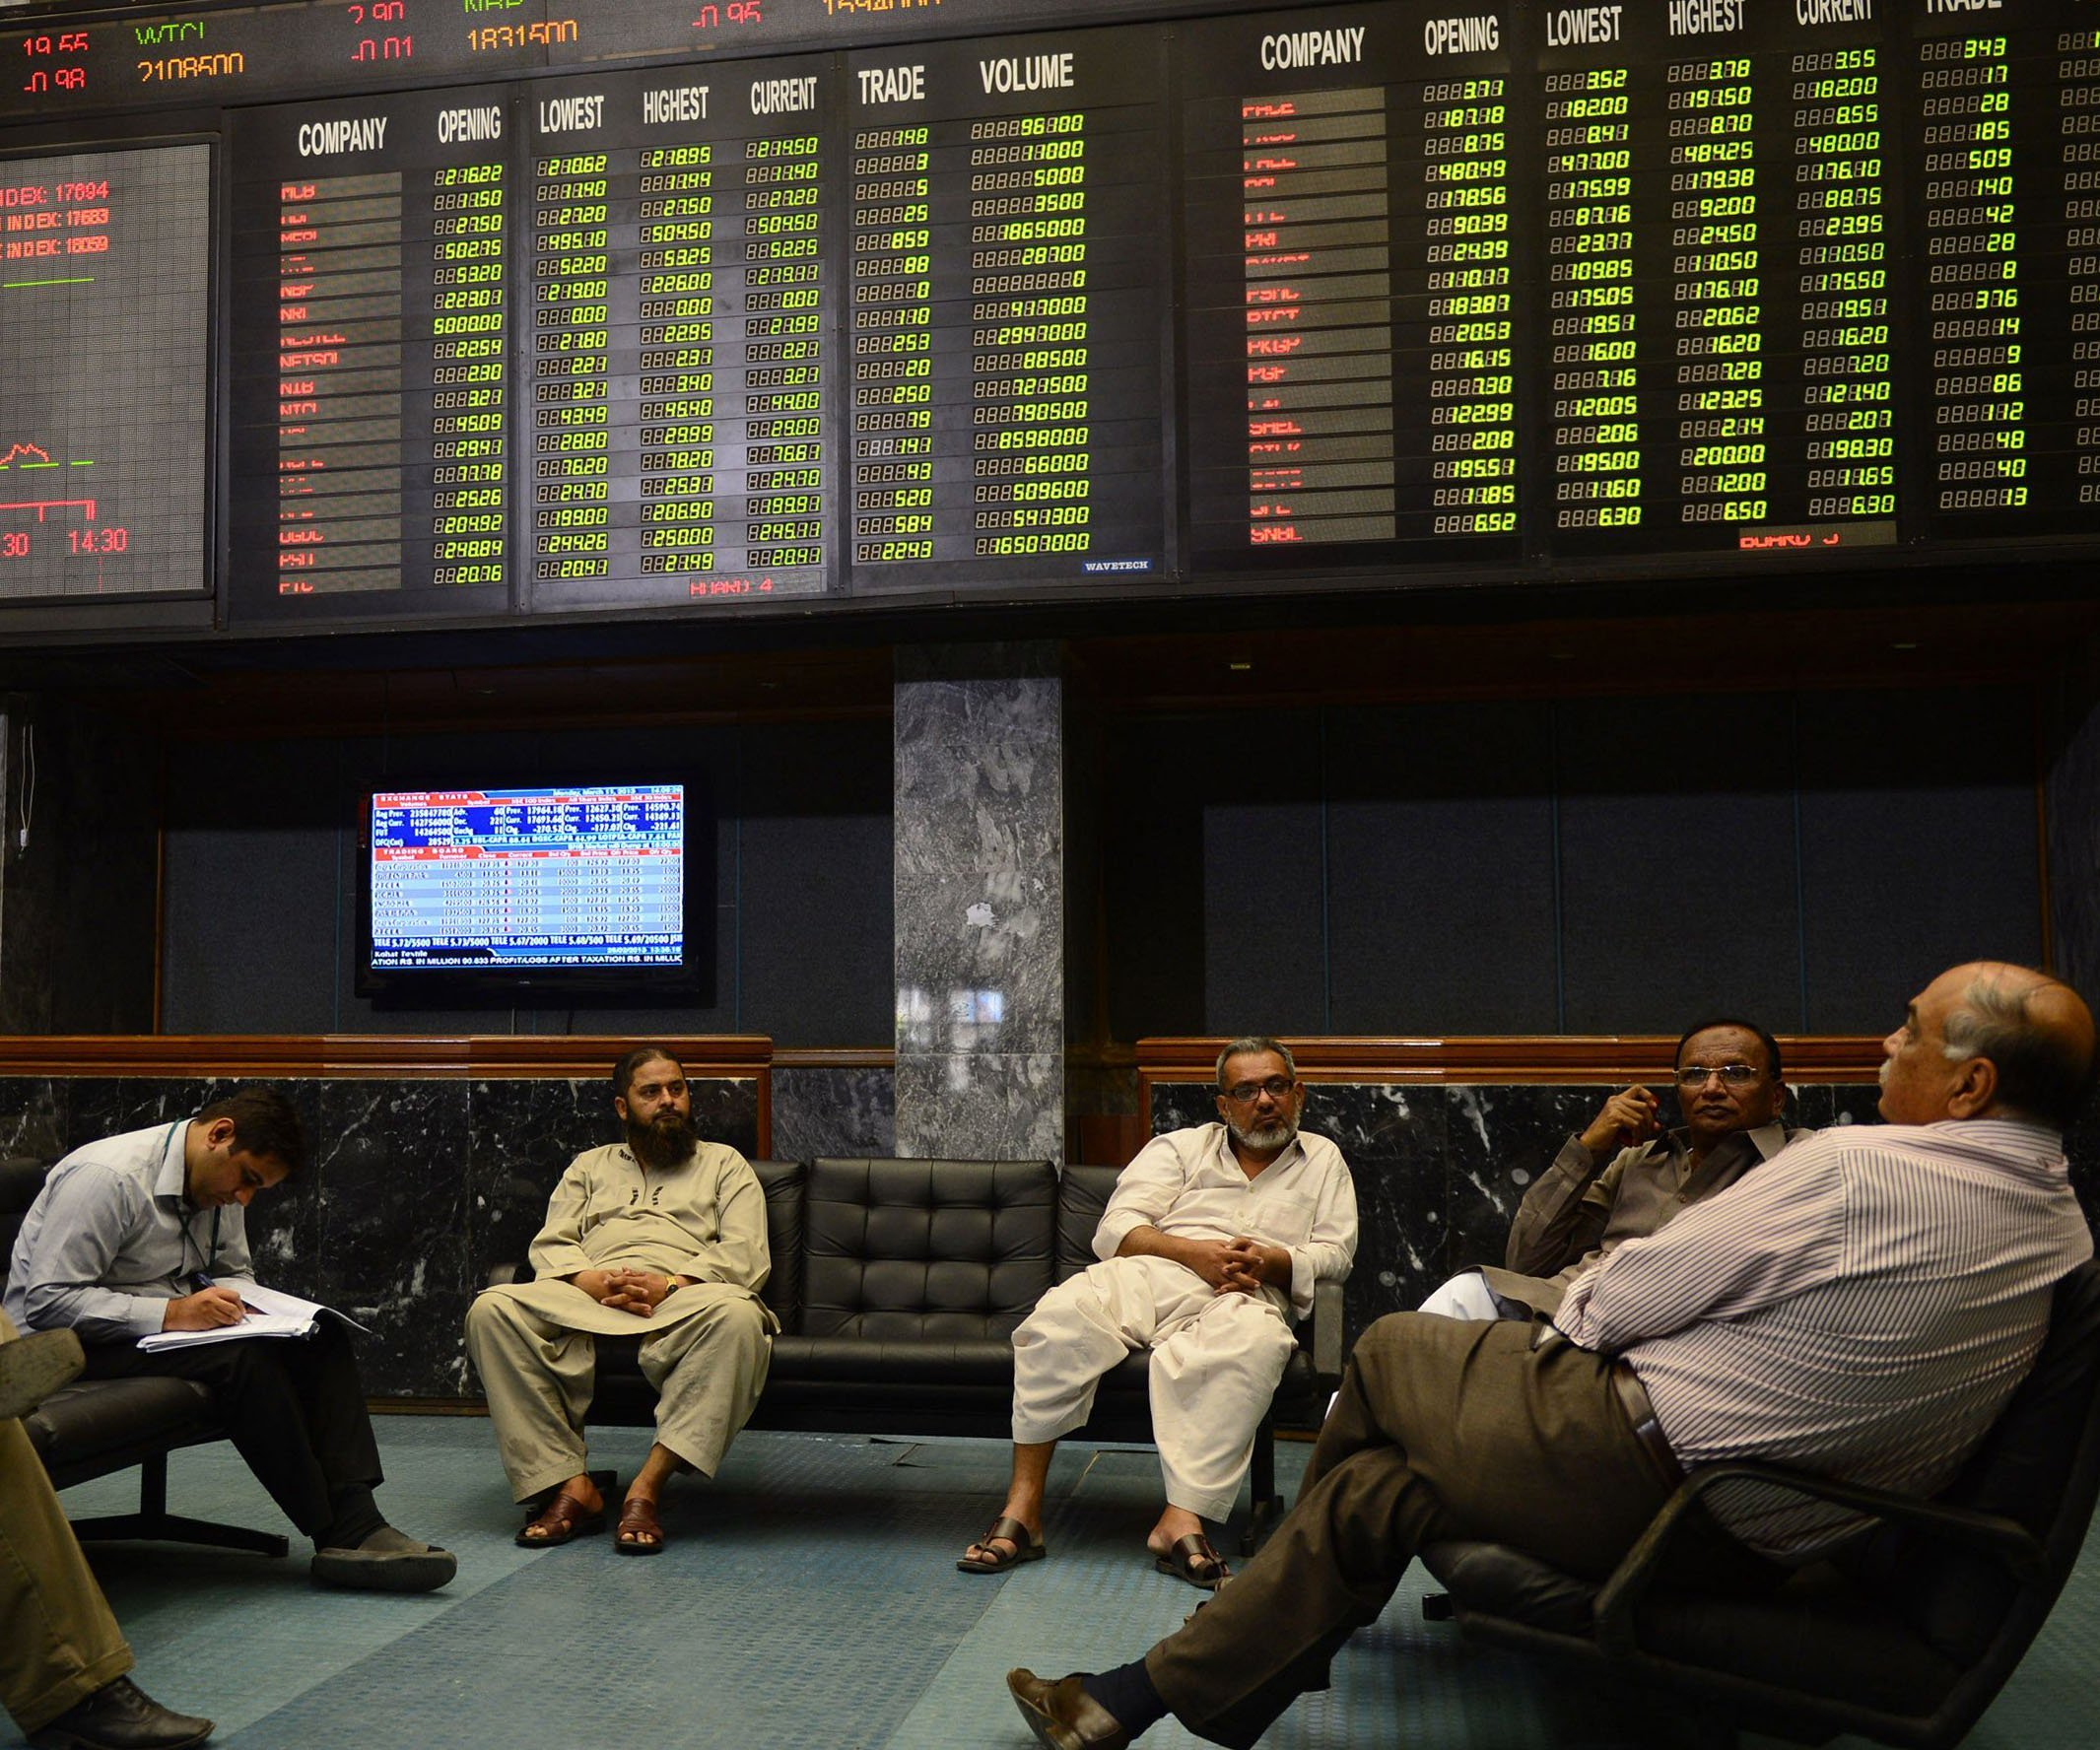 Benchmark index decreases 0.82% to settle at 34,190.62. PHOTO: AFP